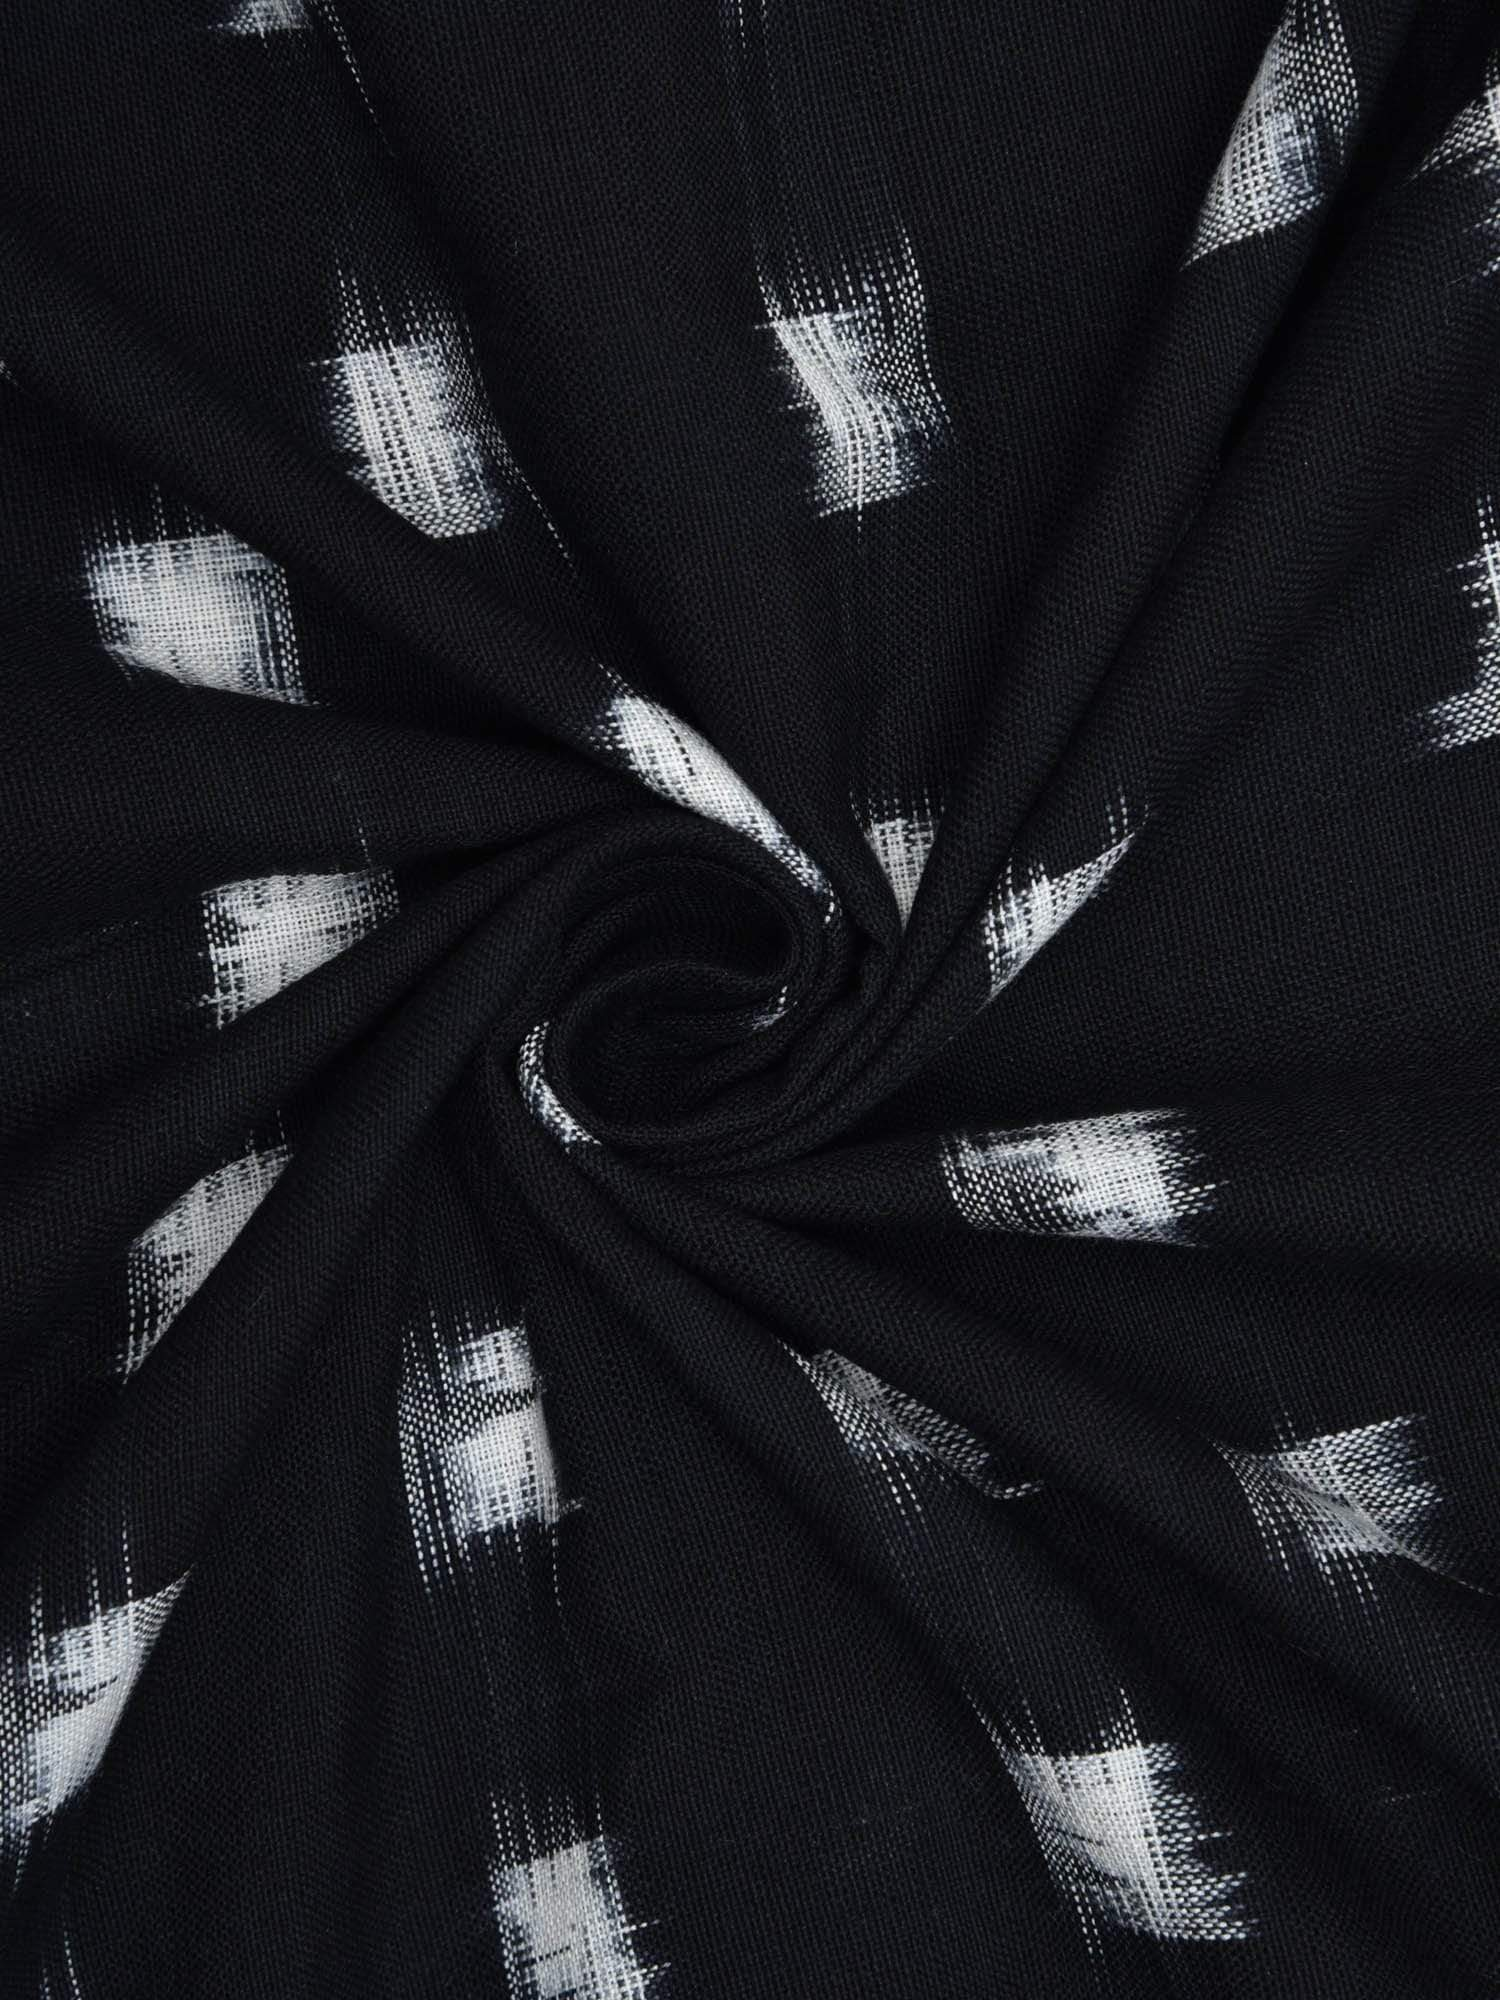 Black Ikat Cotton Handloom Fabric With Square Buta Design F0112